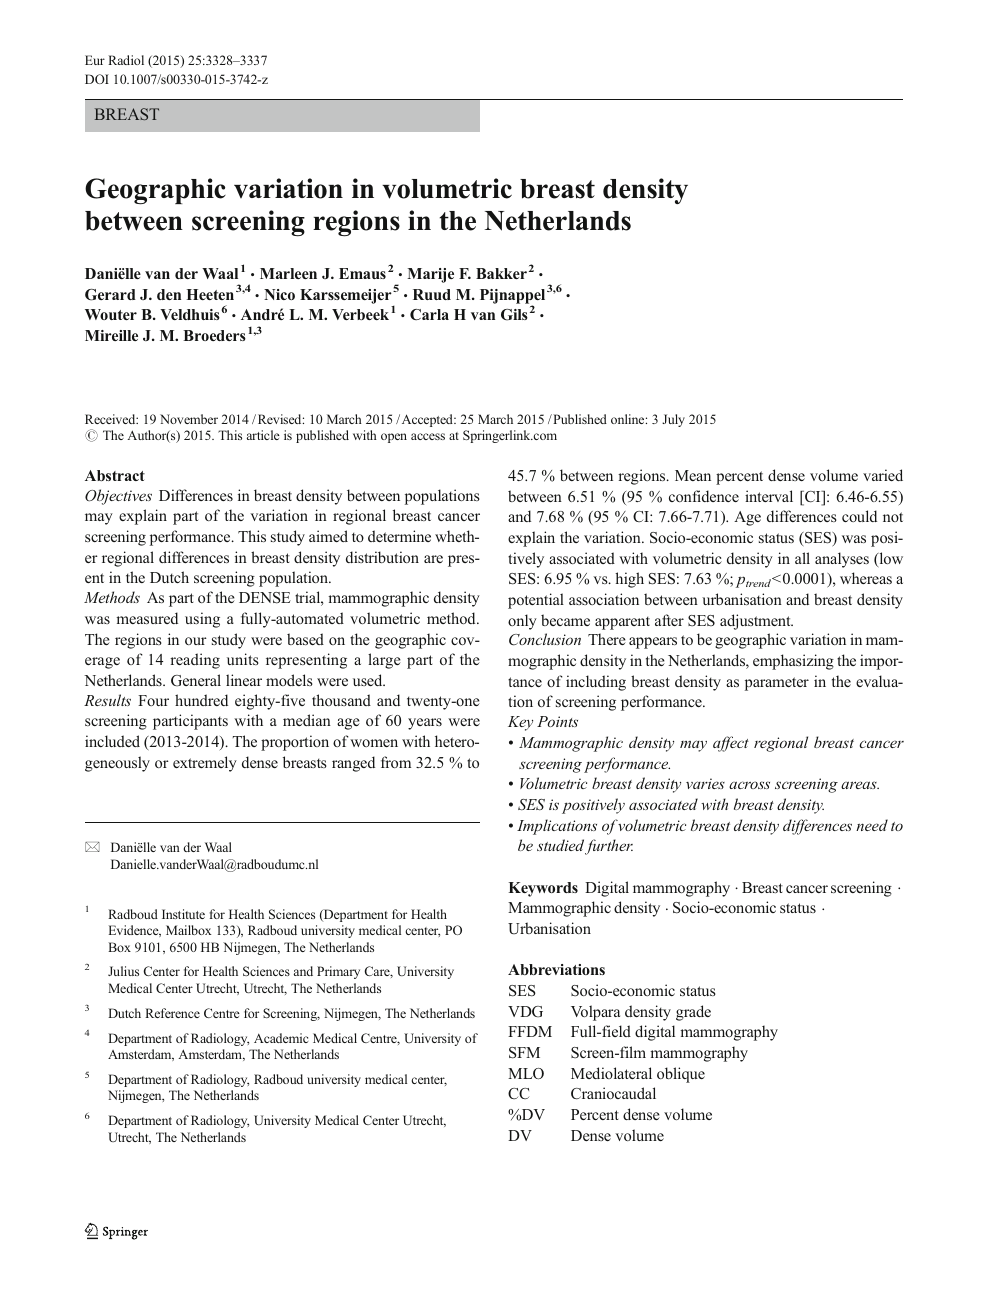 Geographic variation in volumetric breast density between